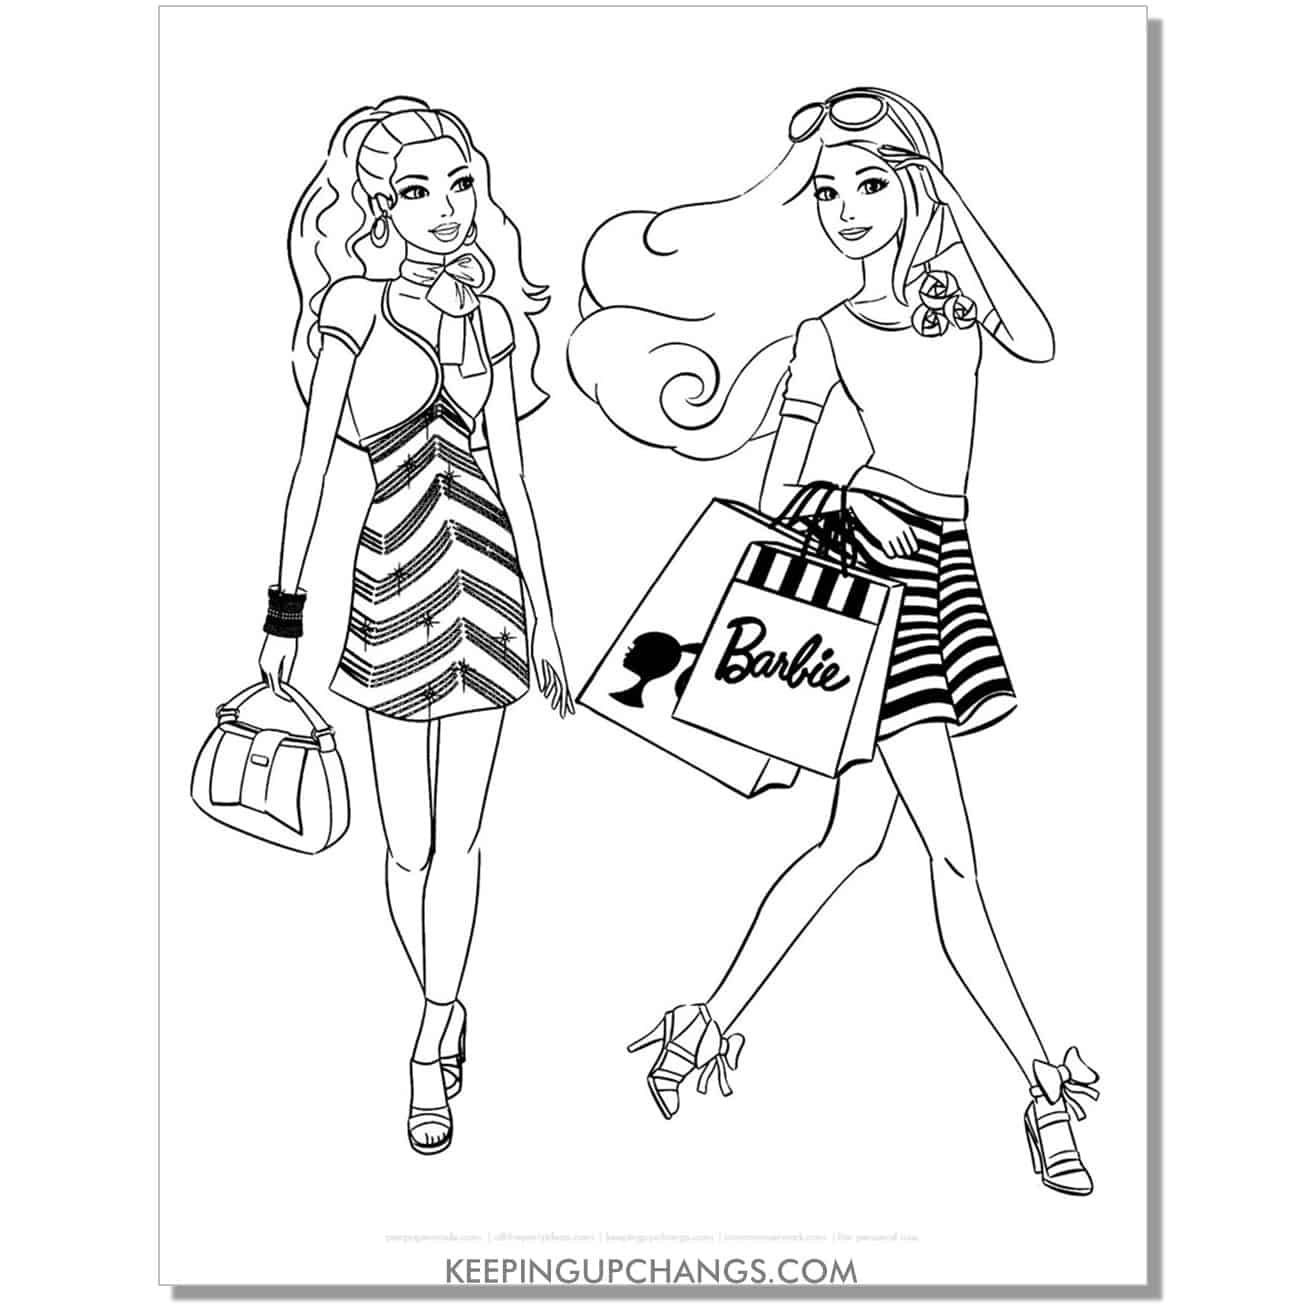 barbie shopping with friend coloring page.